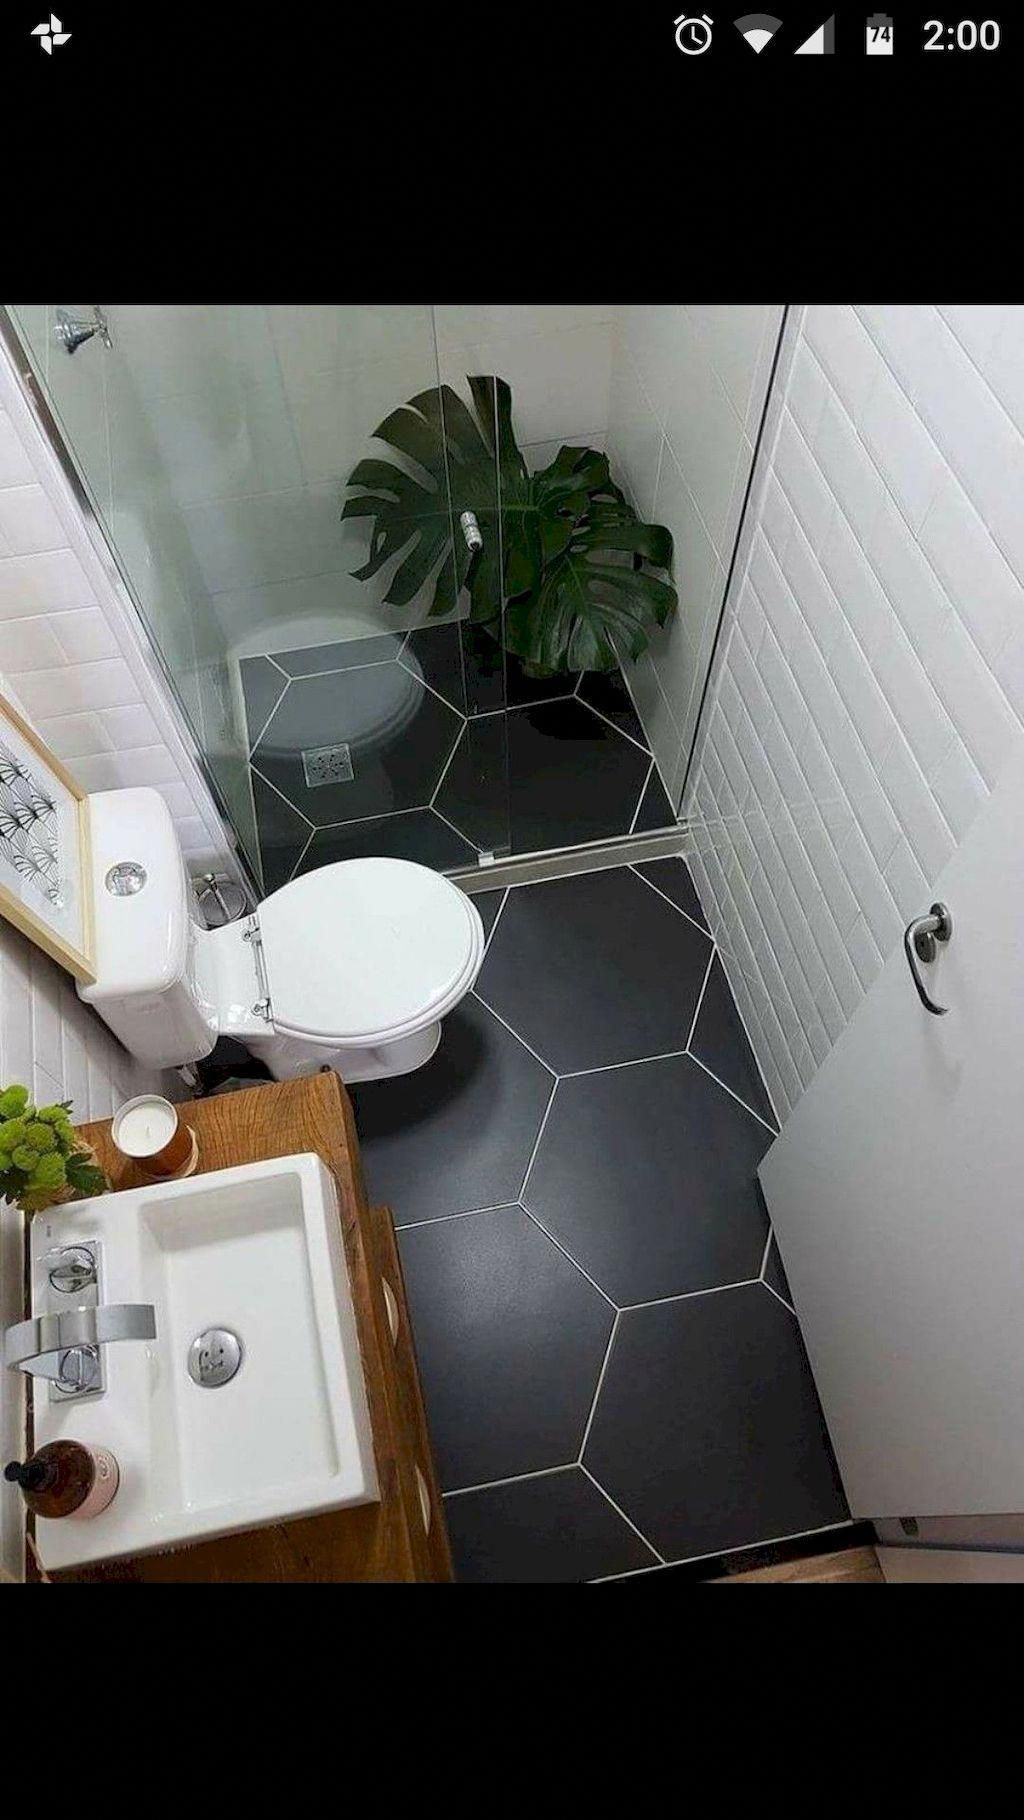 Must See Bathroom Tiles Ideas How To Configure It In Small Space Small Bathroom Tiles Bathroom Remodel Designs Small Space Bathroom